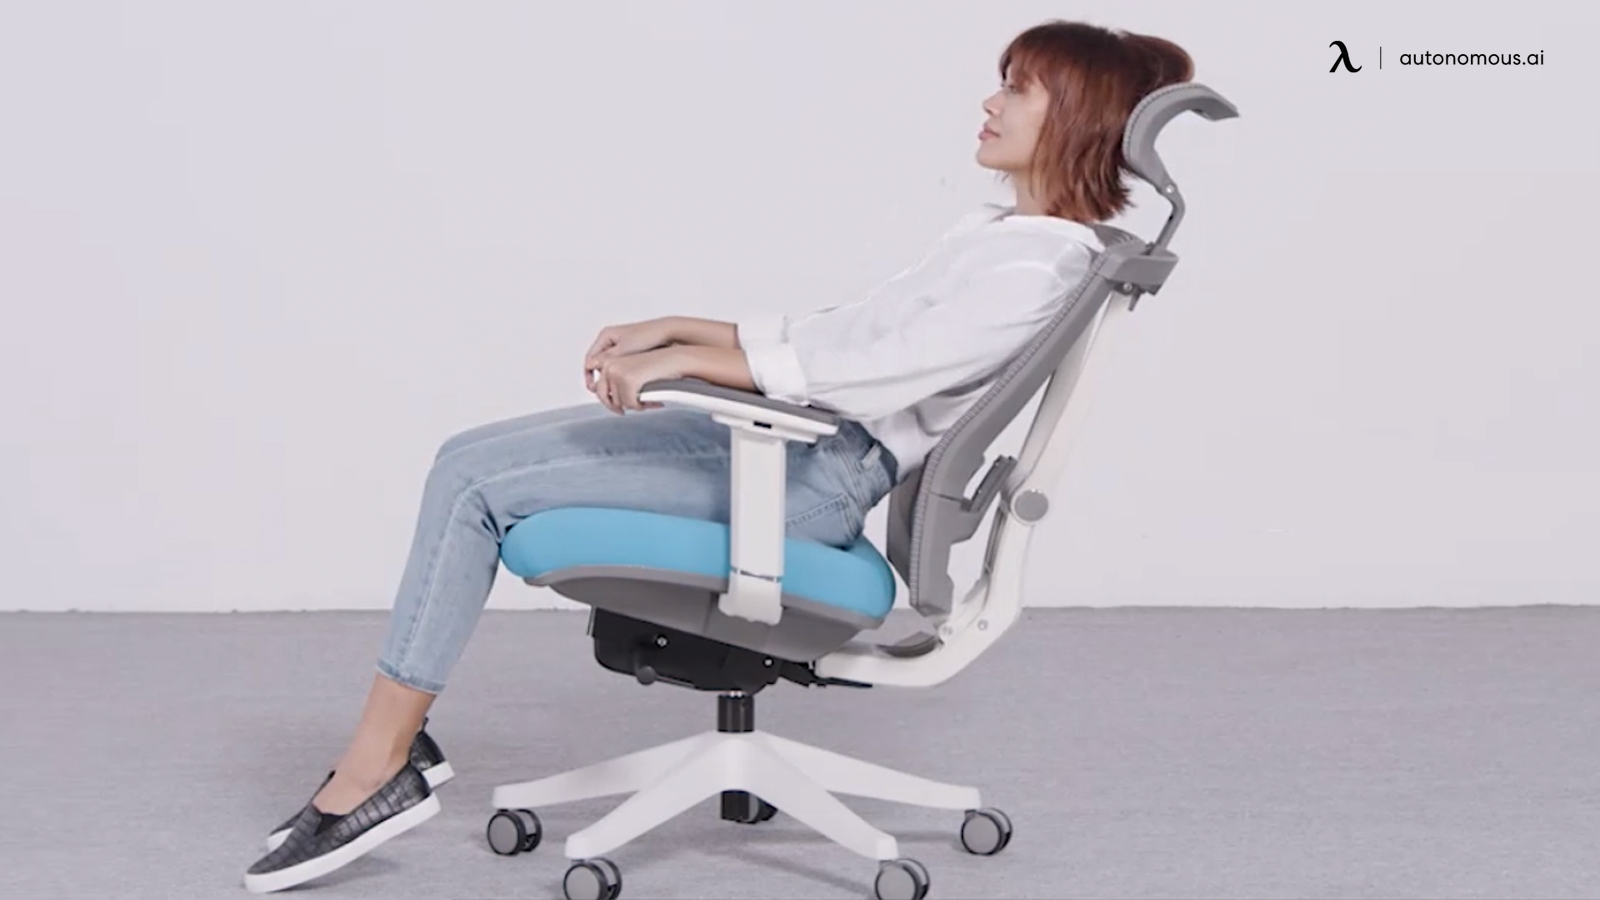 Reclining in chair